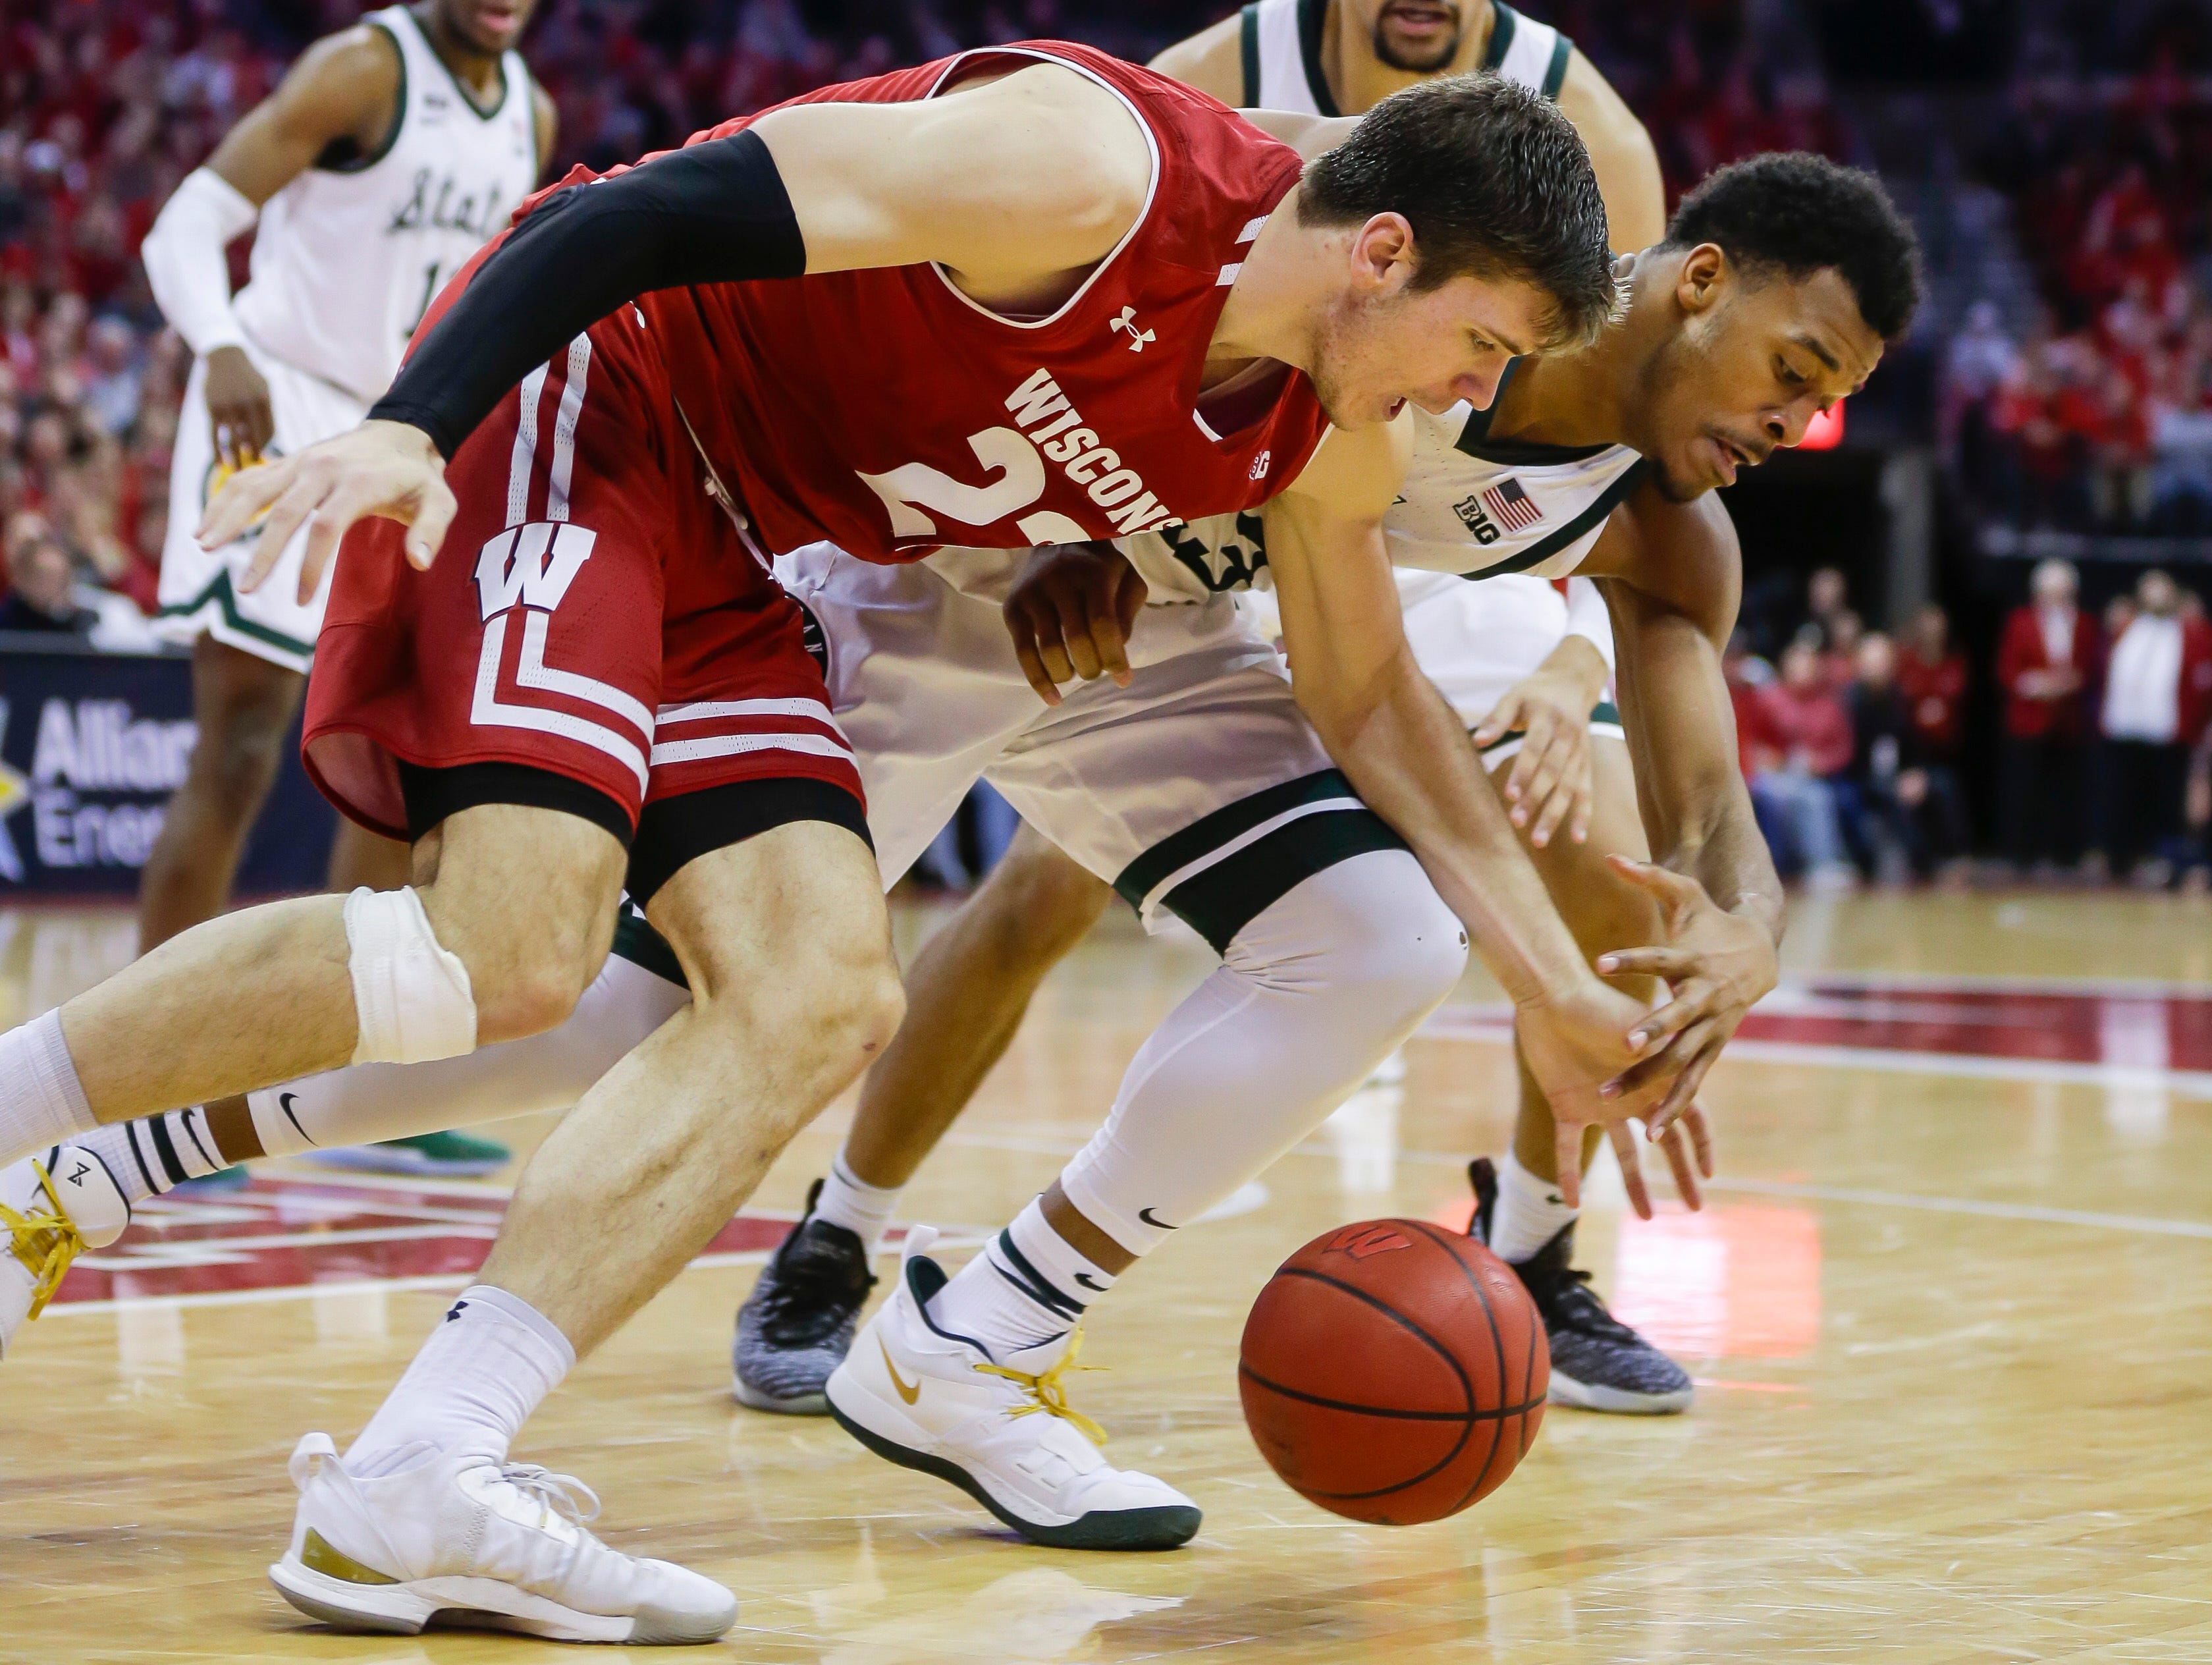 Wisconsin's Ethan Happ (22) and Michigan States's Xavier Tillman go after a loose ball during the second half of an NCAA college basketball game Tuesday, Feb. 12, 2019, in Madison, Wis. Michigan State won 67-59.